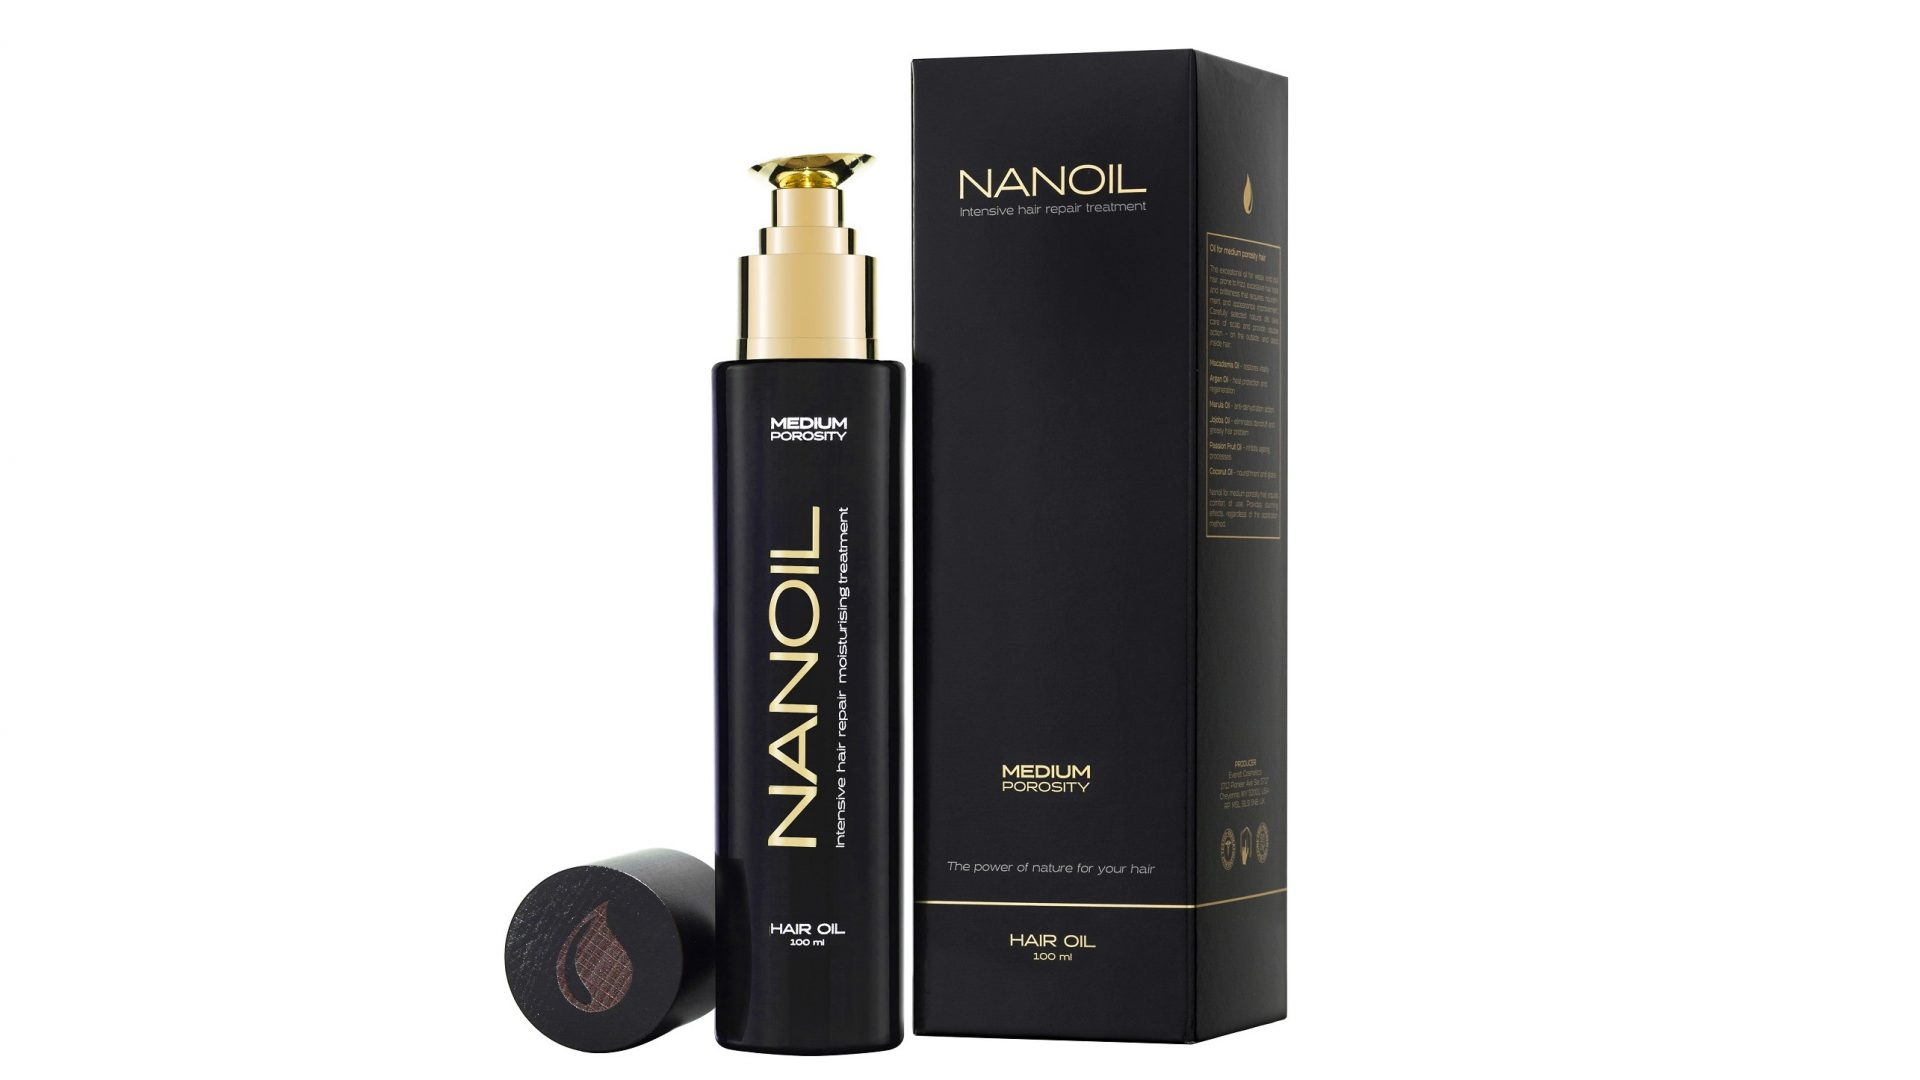 NANOIL HAIR OIL